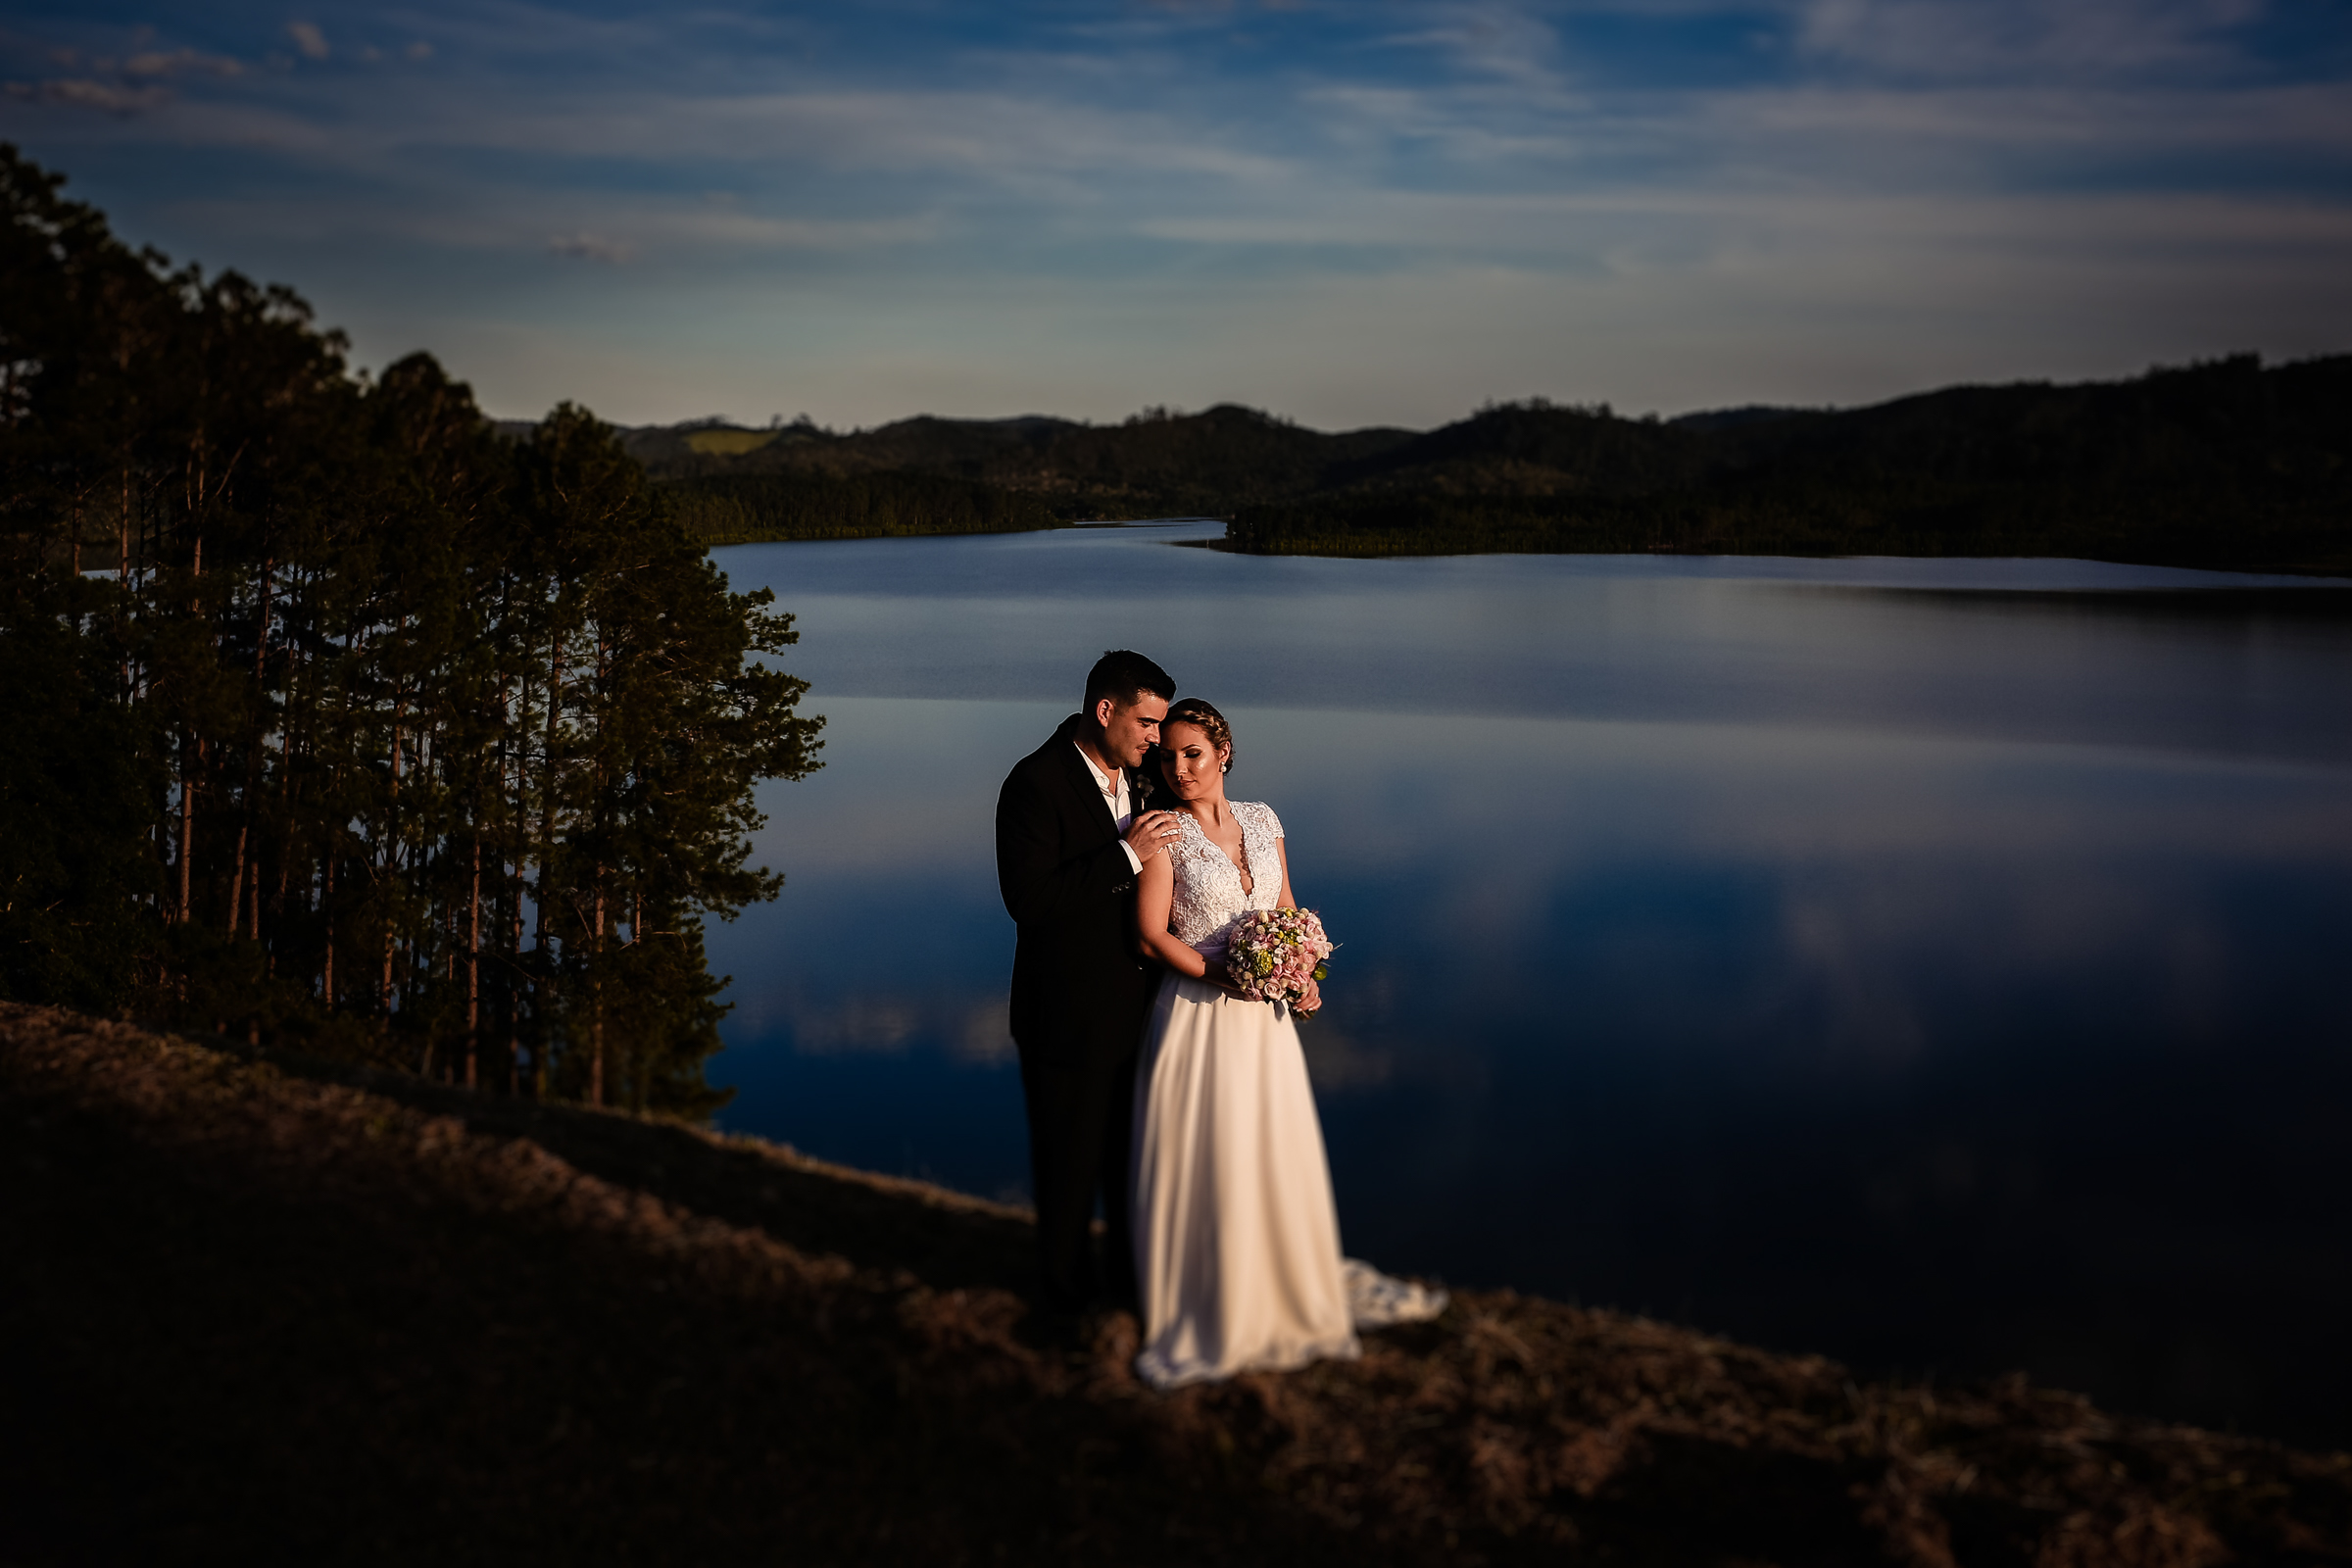 Couple portrait at waters edge with clouds reflected - photo by Área da Fotografia